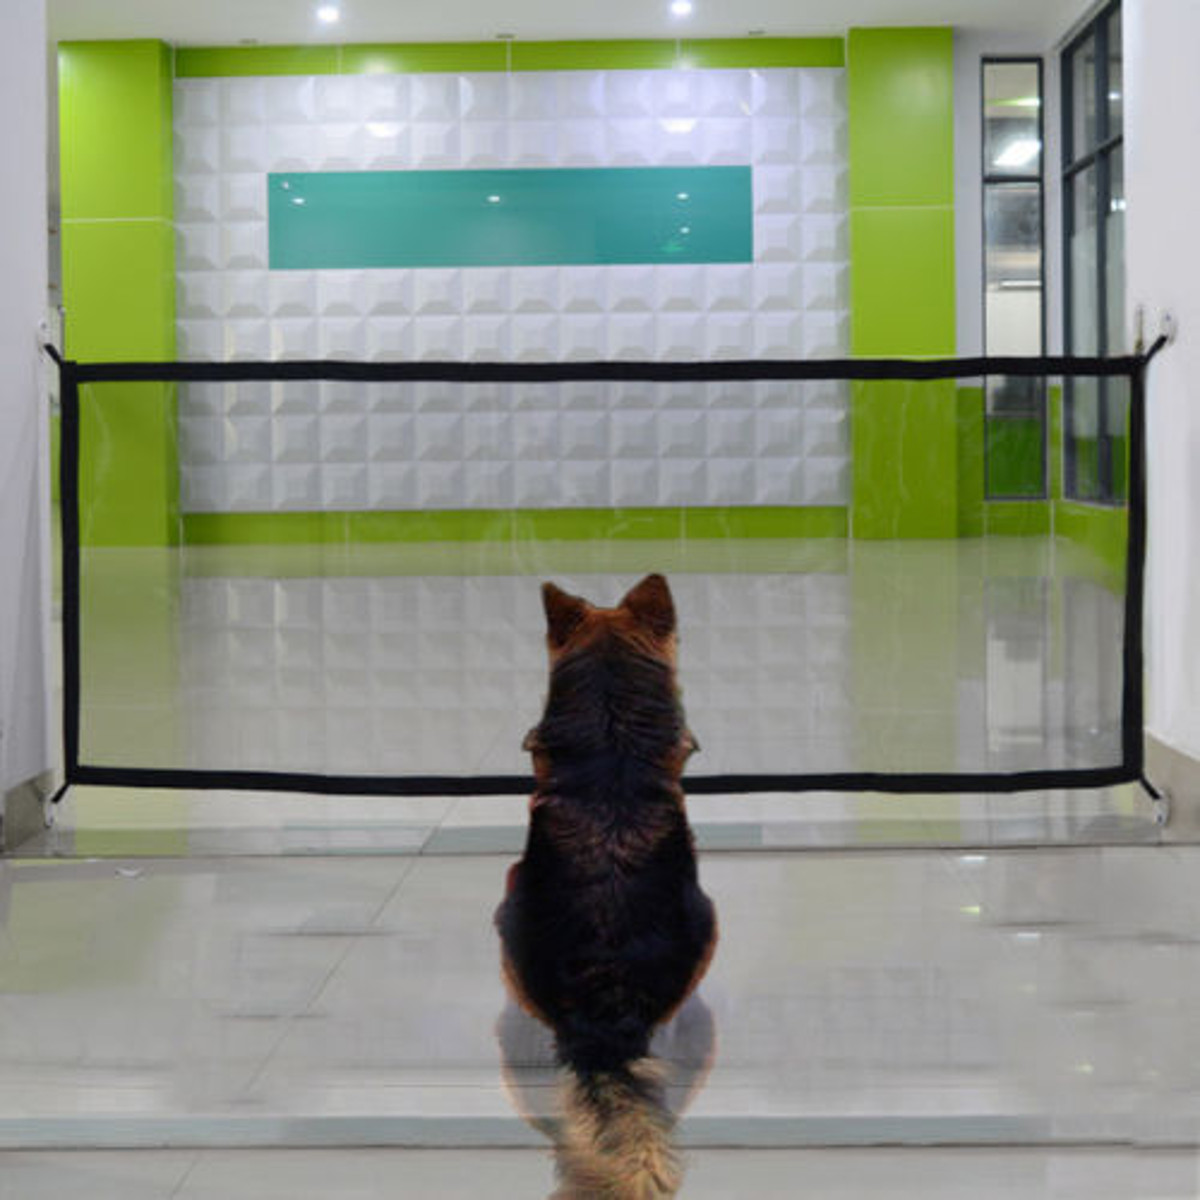 74x182cm Portable Car Magical Safety Gate Guard Fence Isolation Network for Pet Dog Puppy Cat